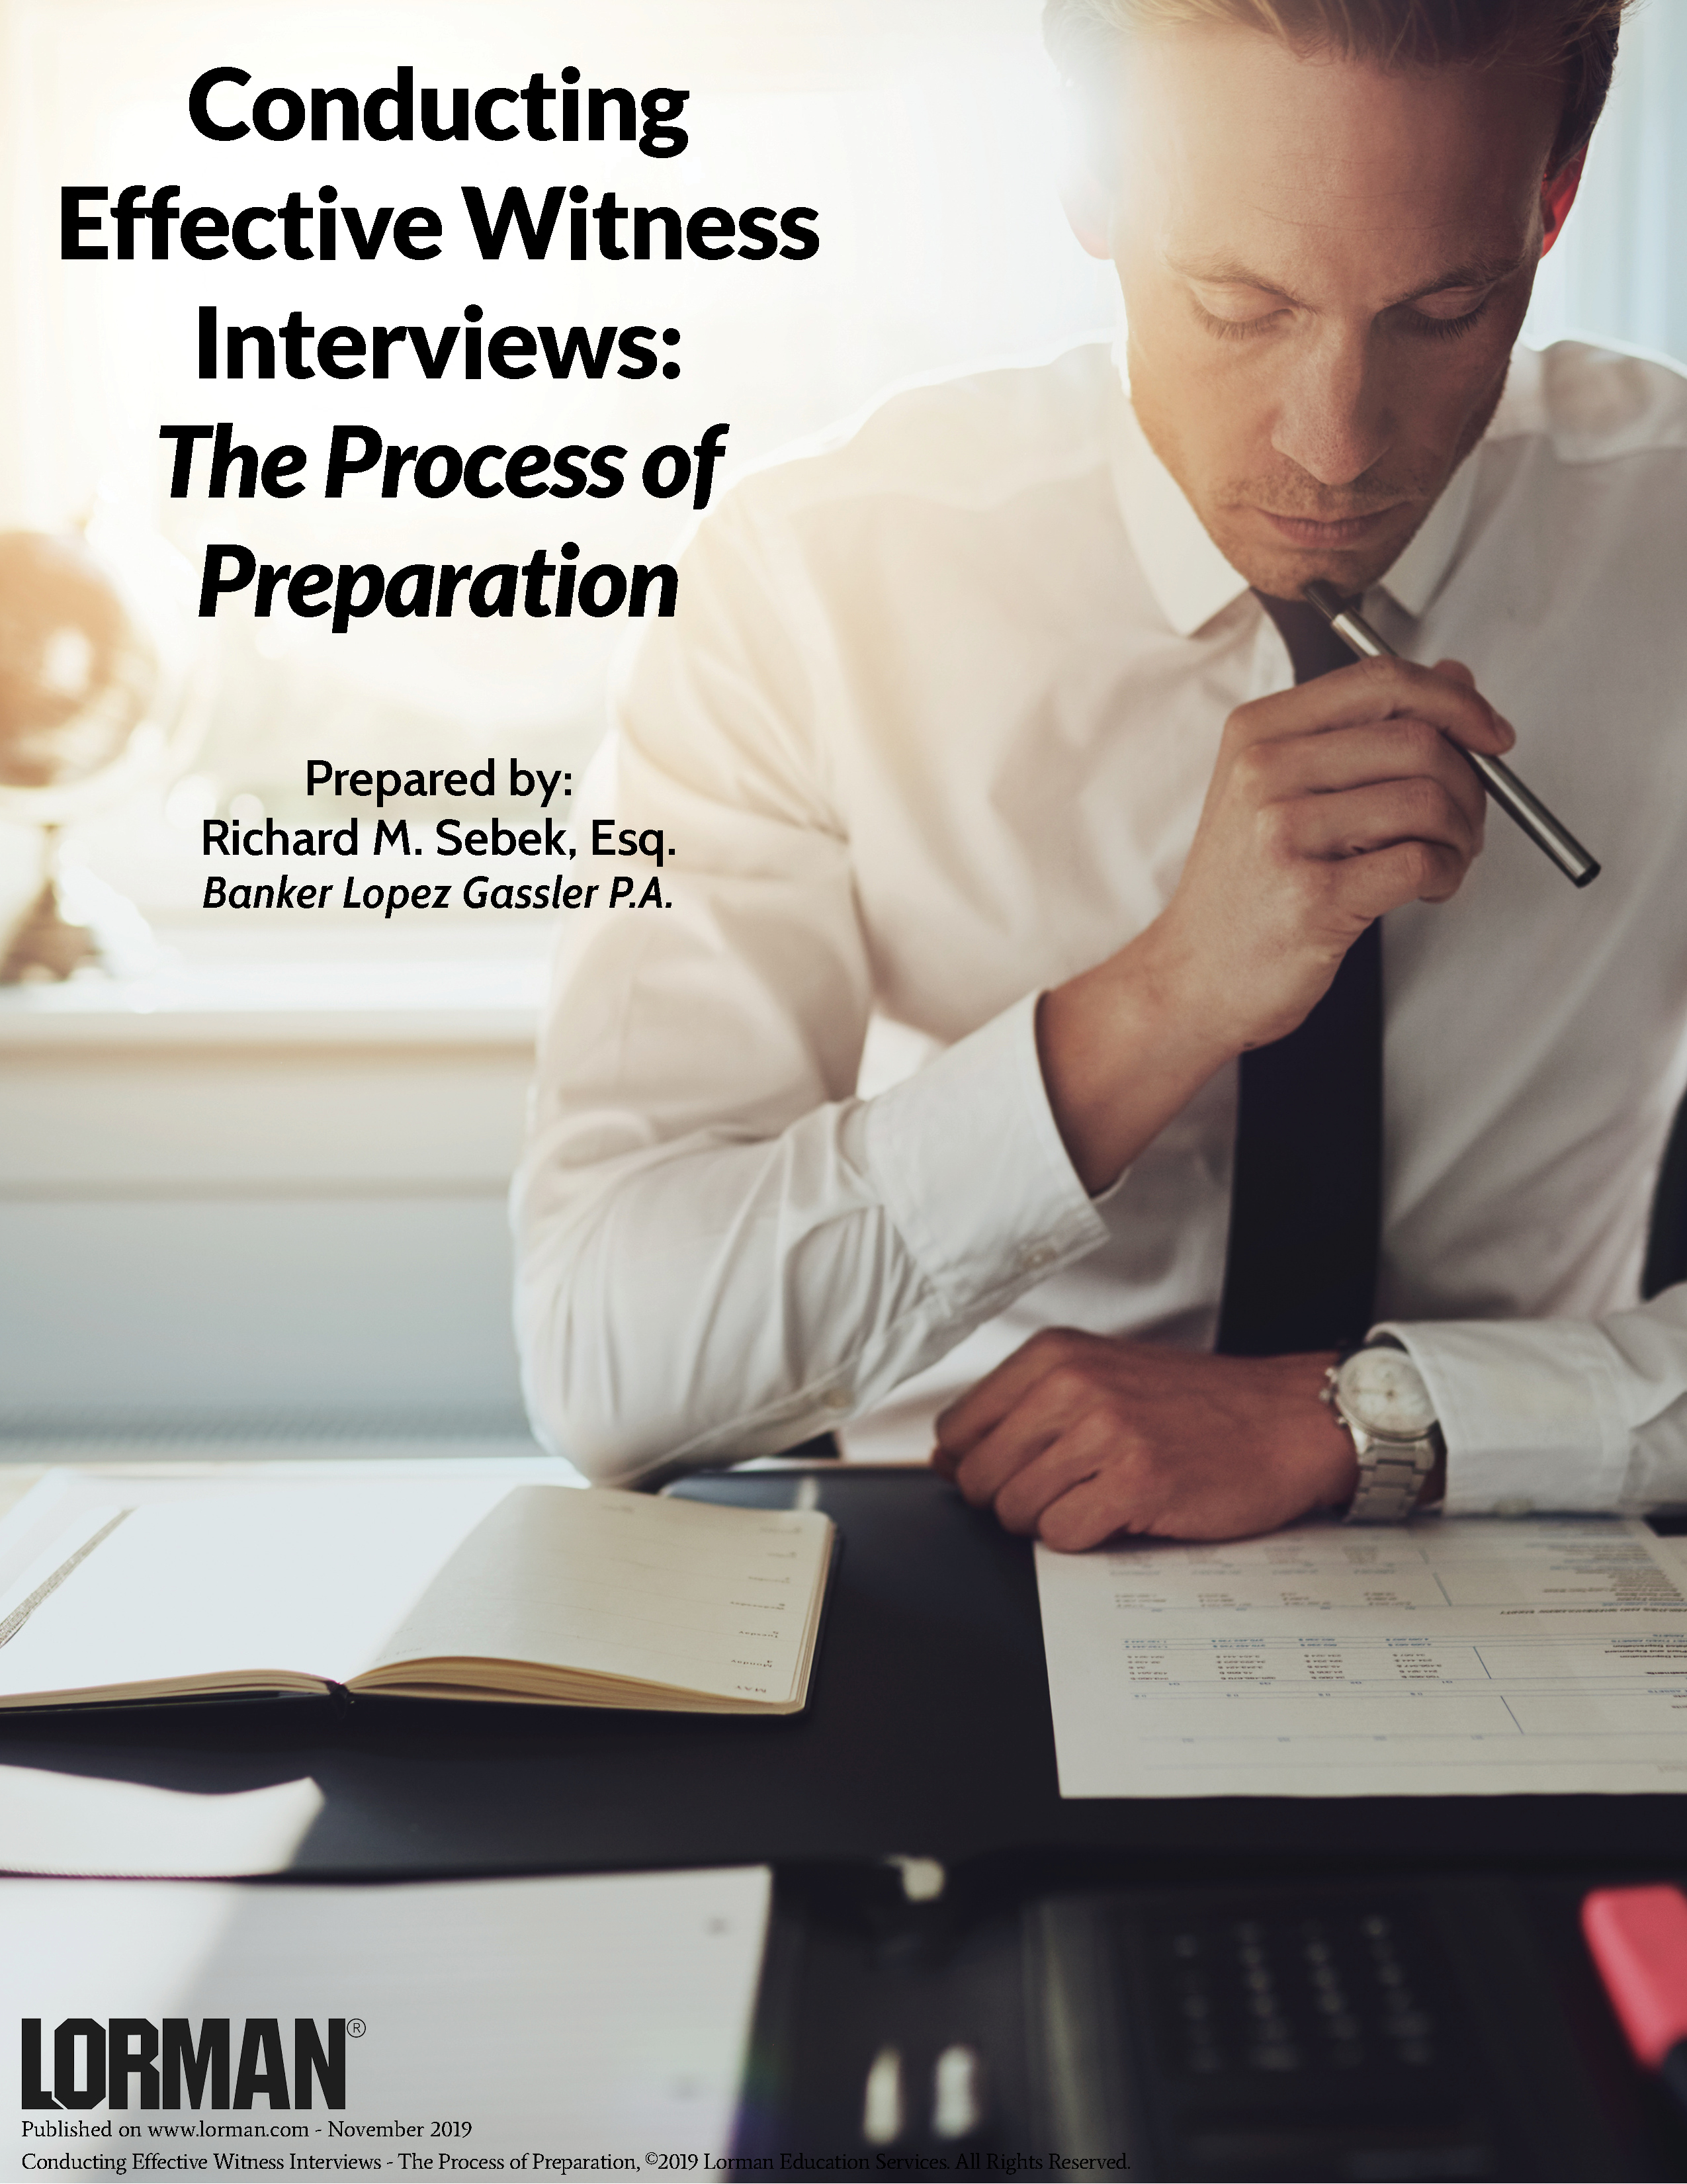 Conducting Effective Witness Interviews - The Process of Preparation